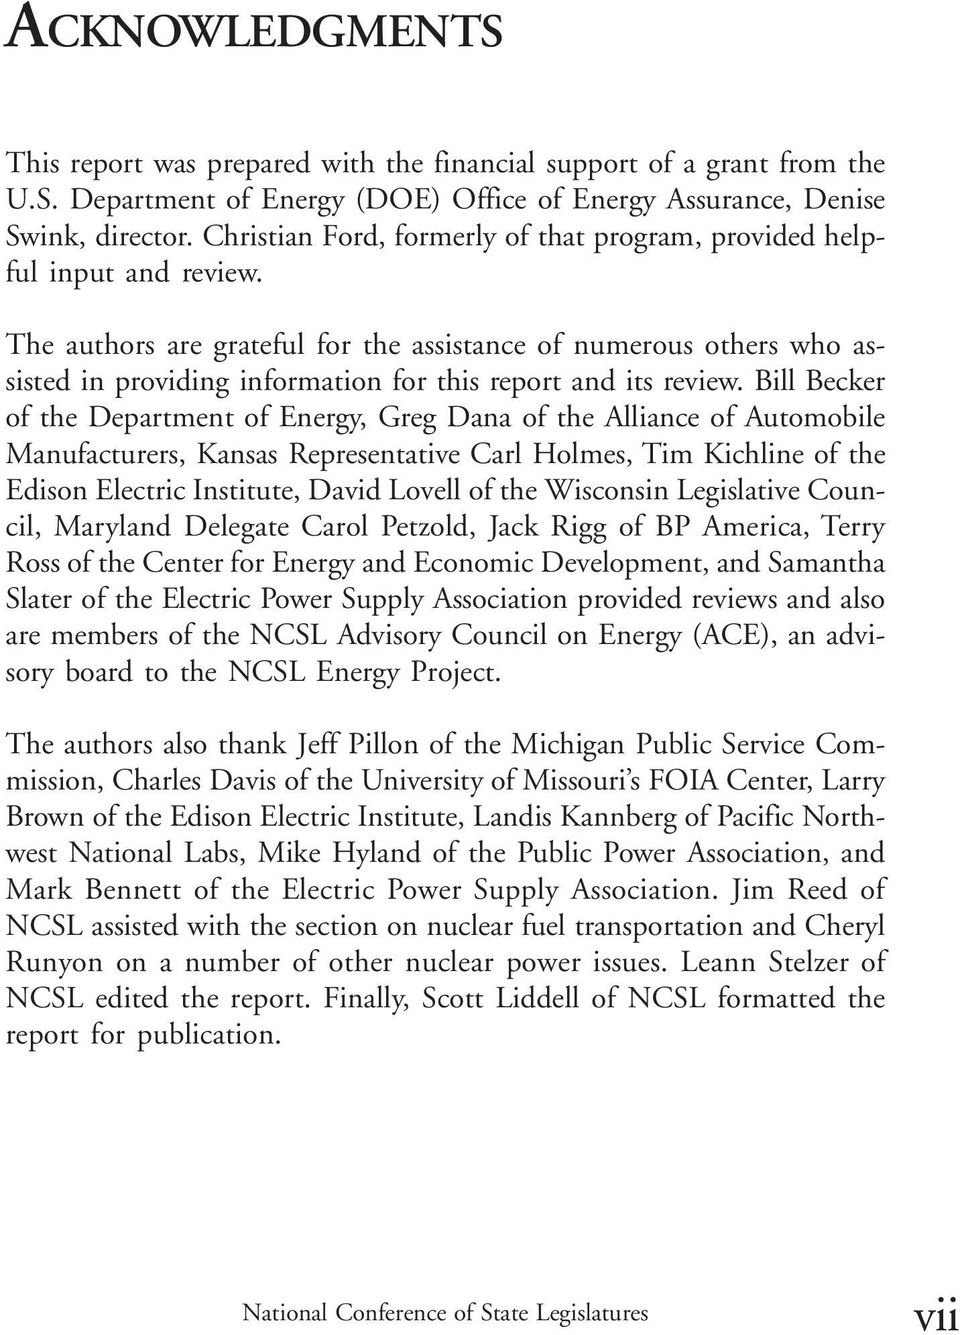 The authors are grateful for the assistance of numerous others who assisted in providing information for this report and its review.